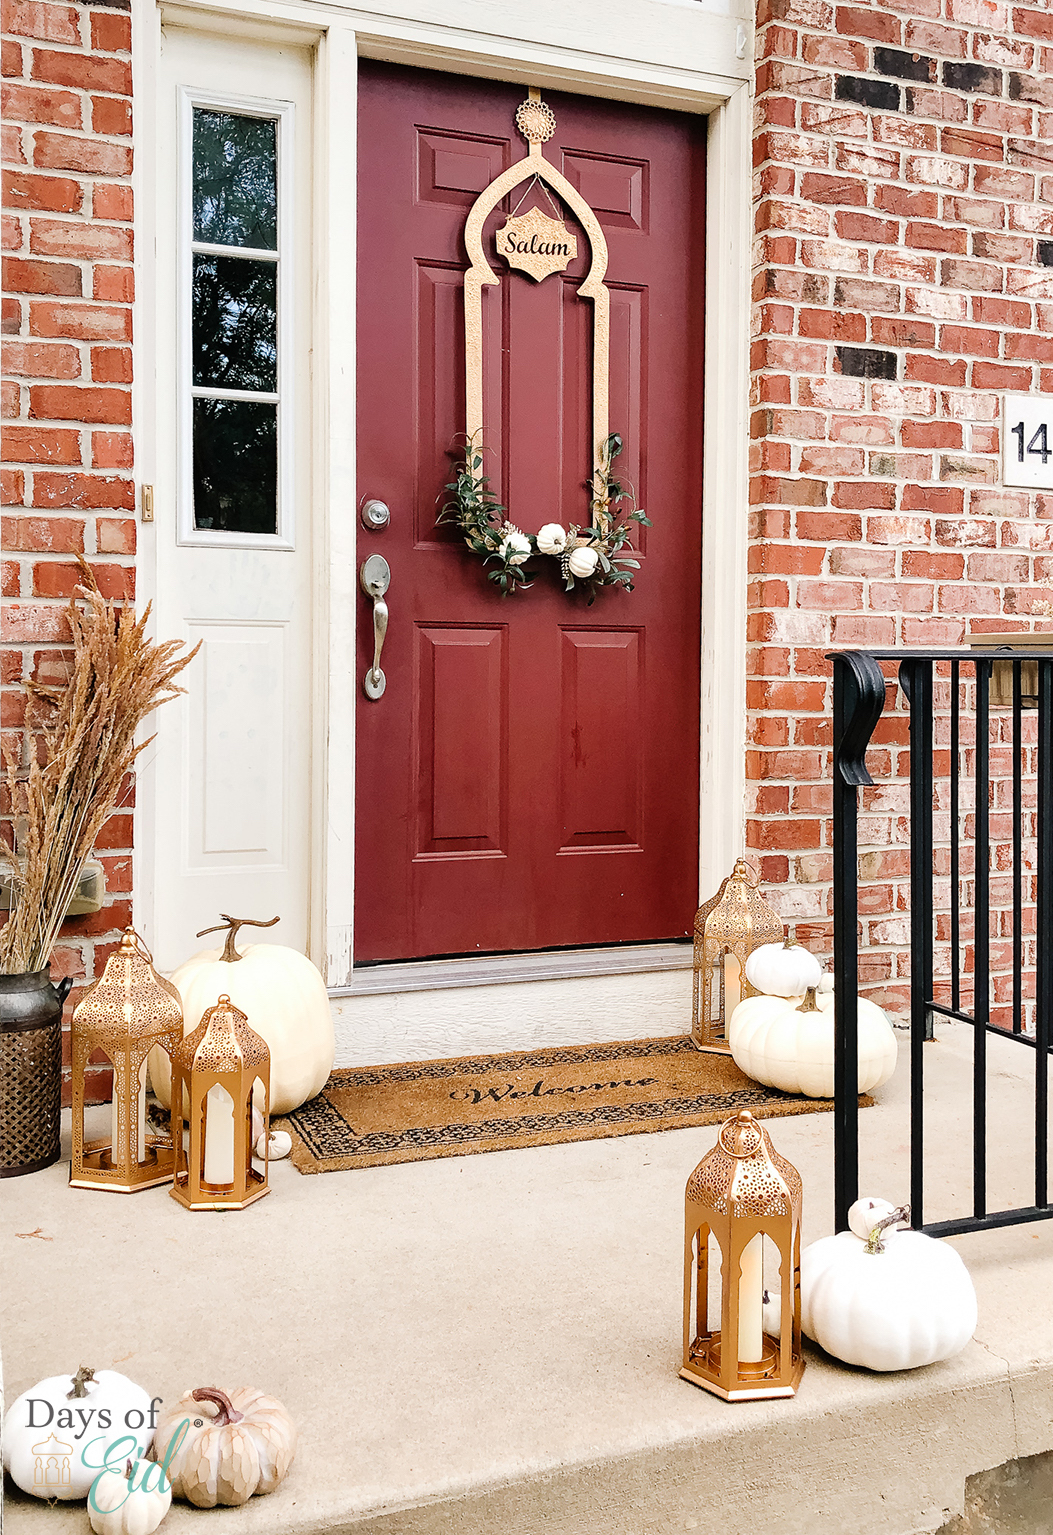 Door decorated with Ramadan wreath, flowers, lanterns, white pumpkins, and other fall accents